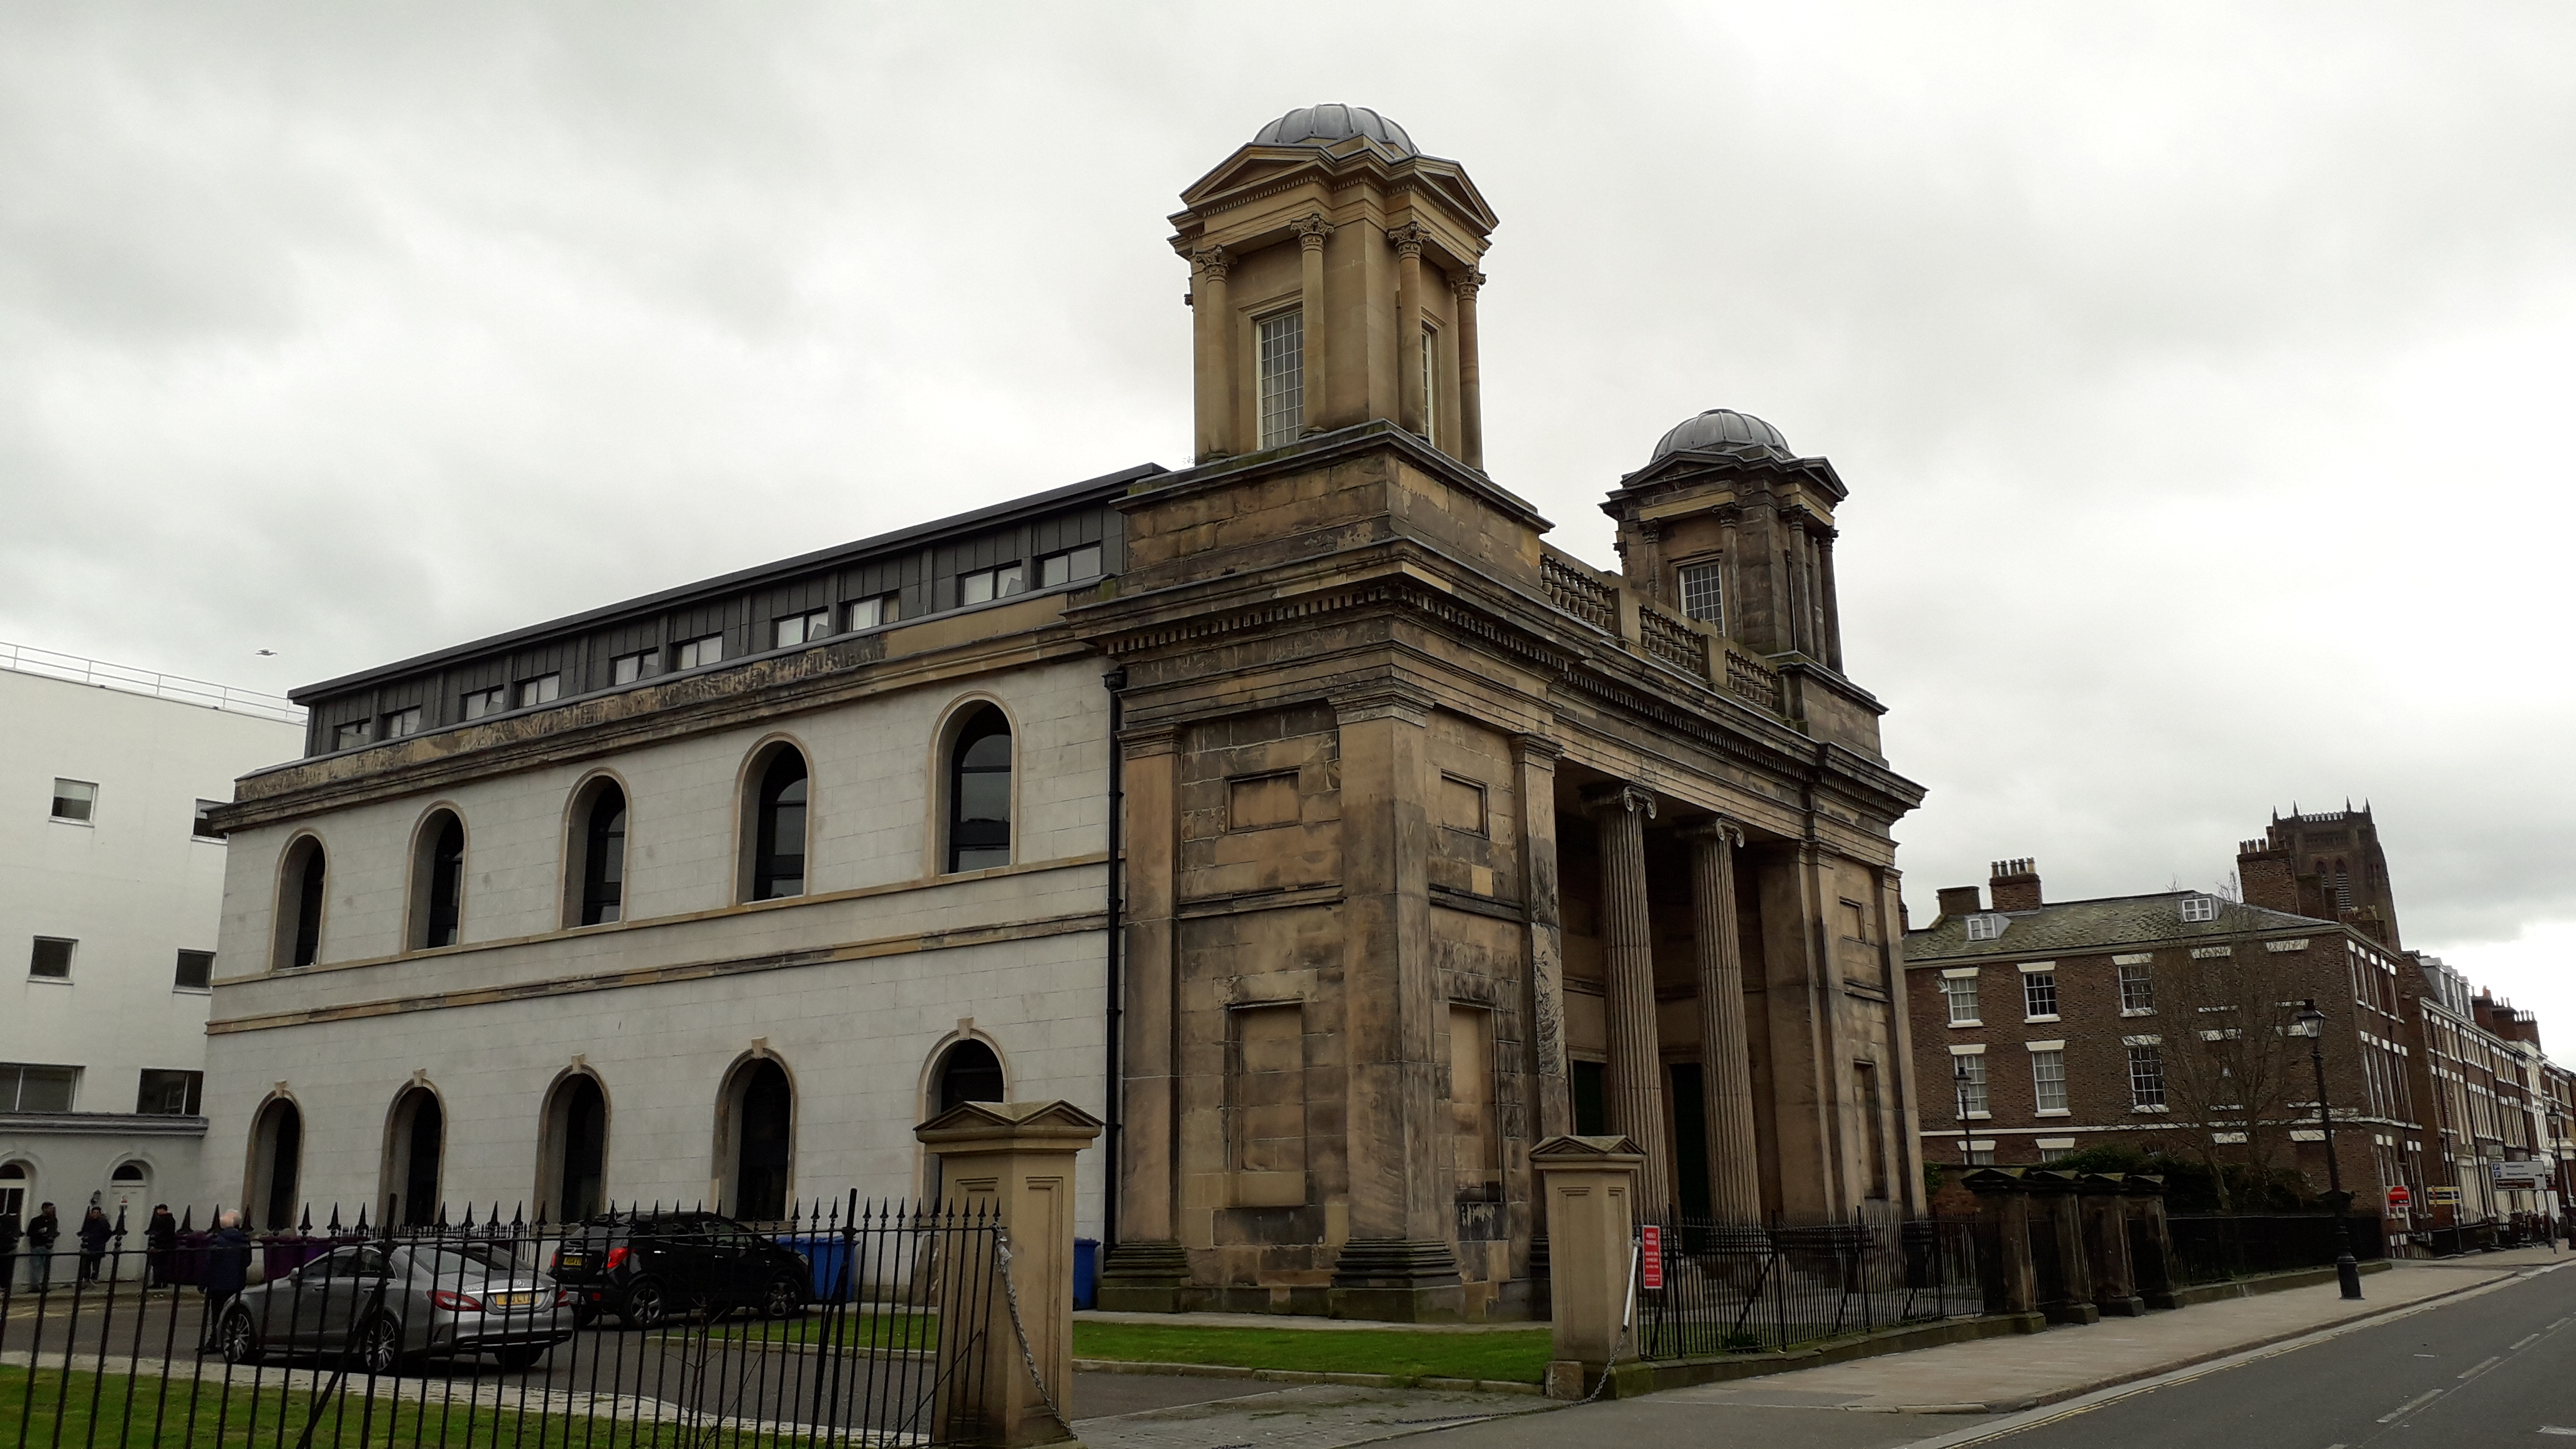 Rodney Street view front from left